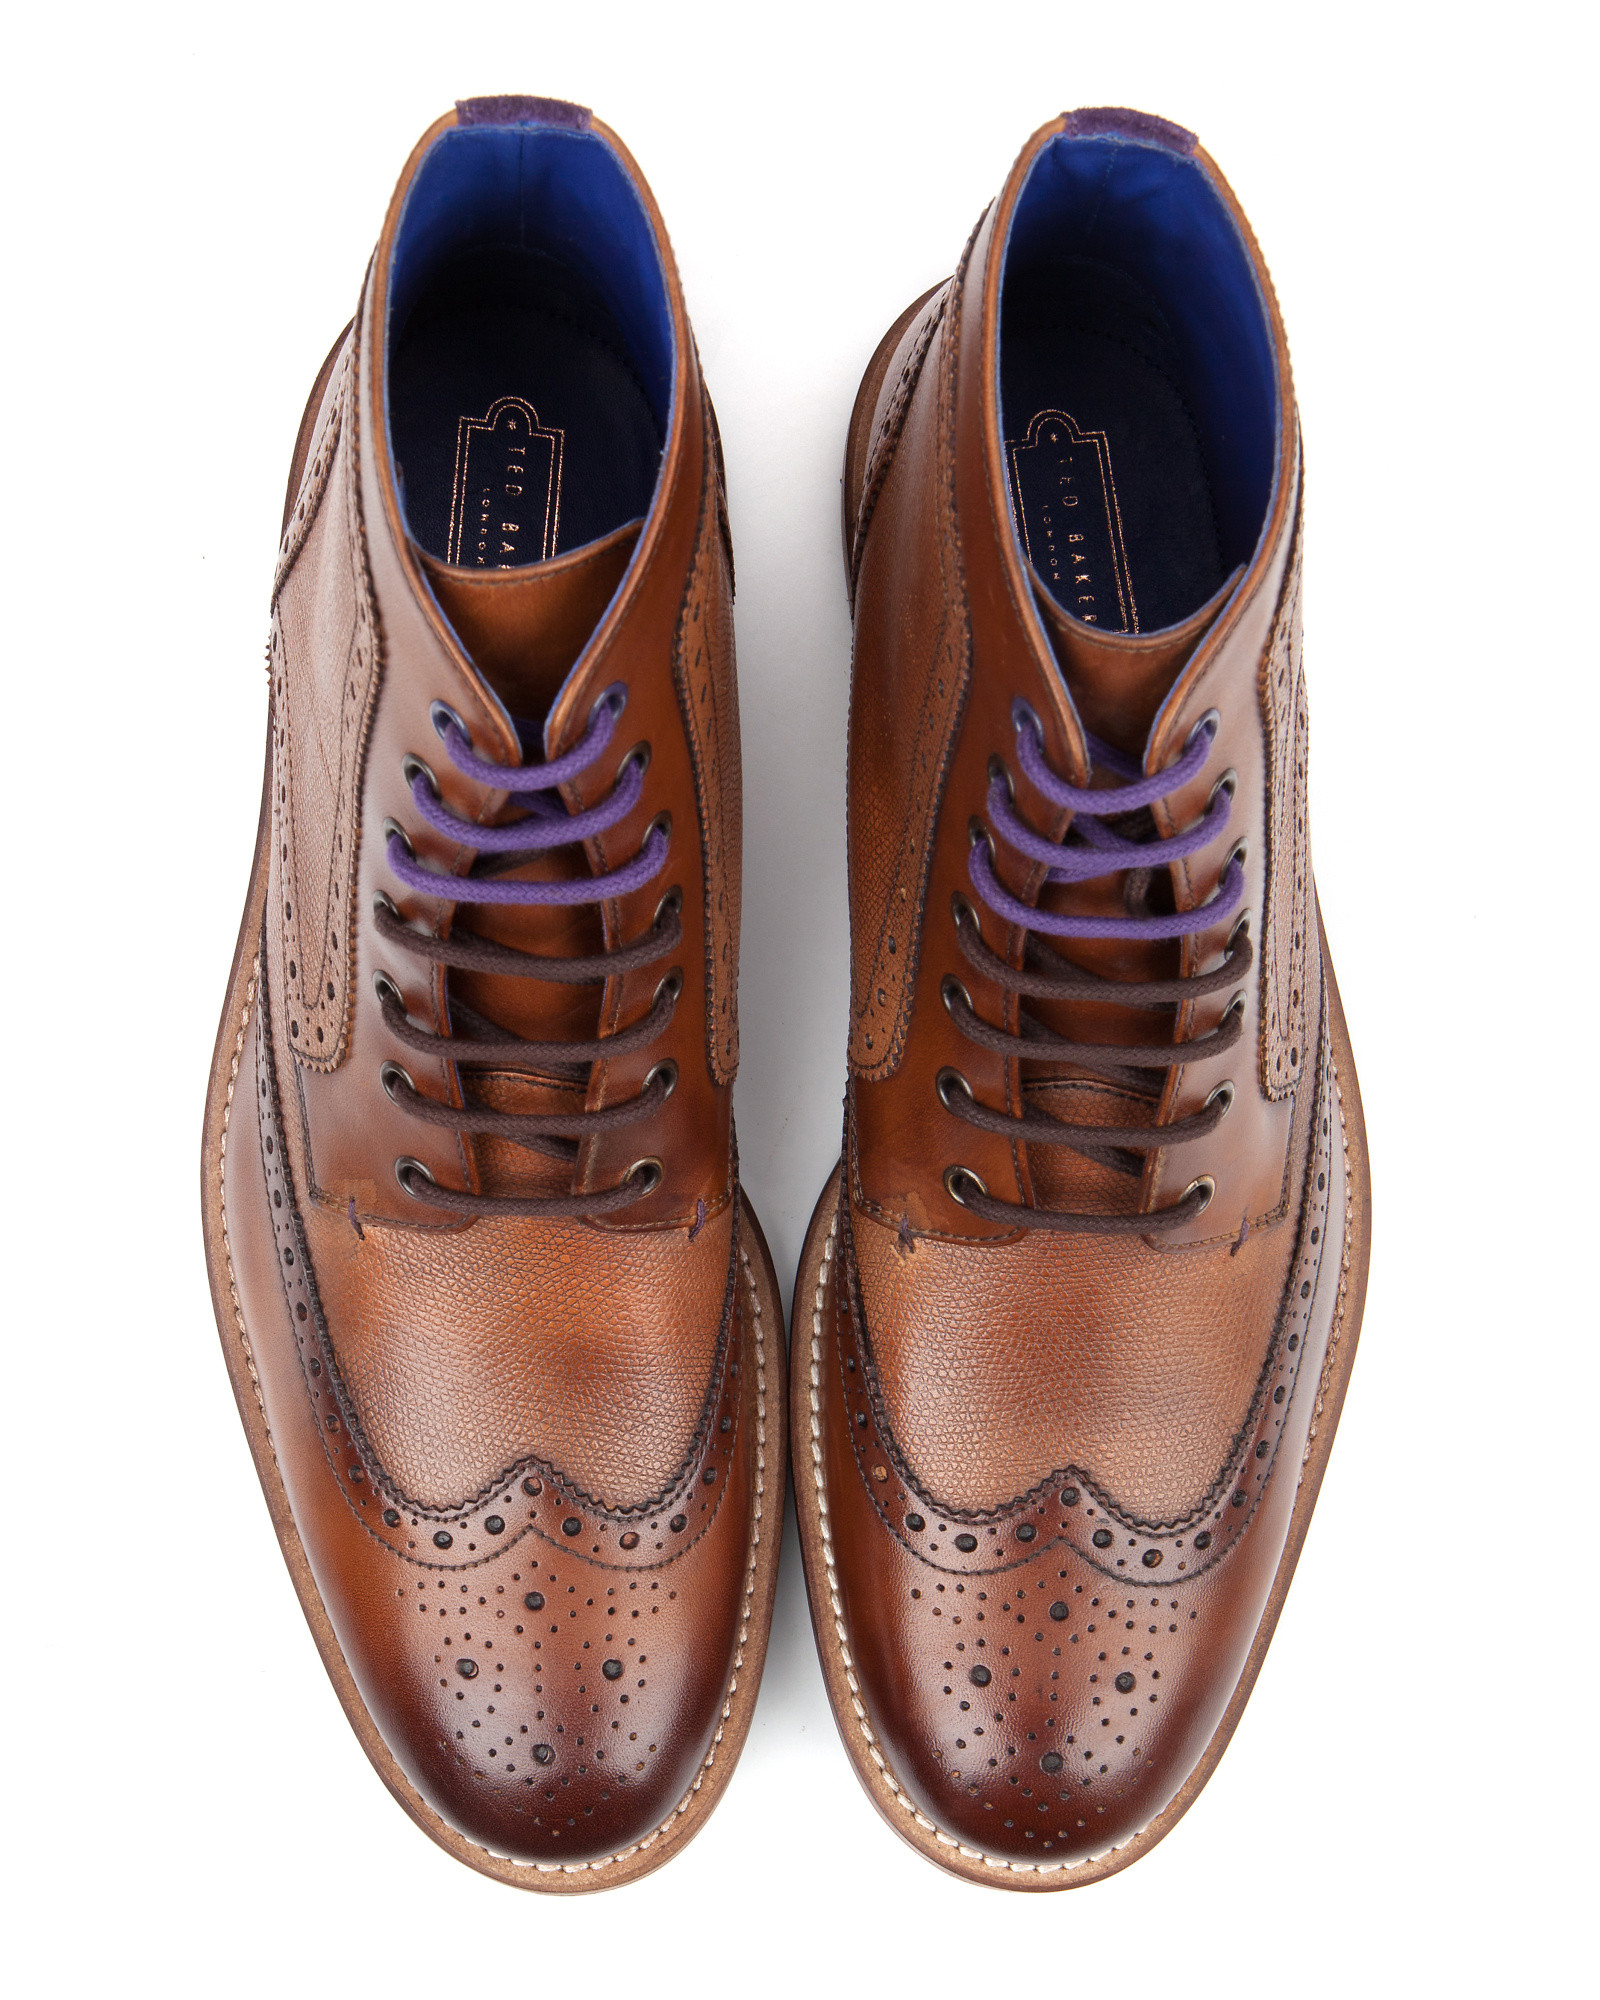 Lyst Ted Baker Leather Wingtip Brogue Ankle Boots In